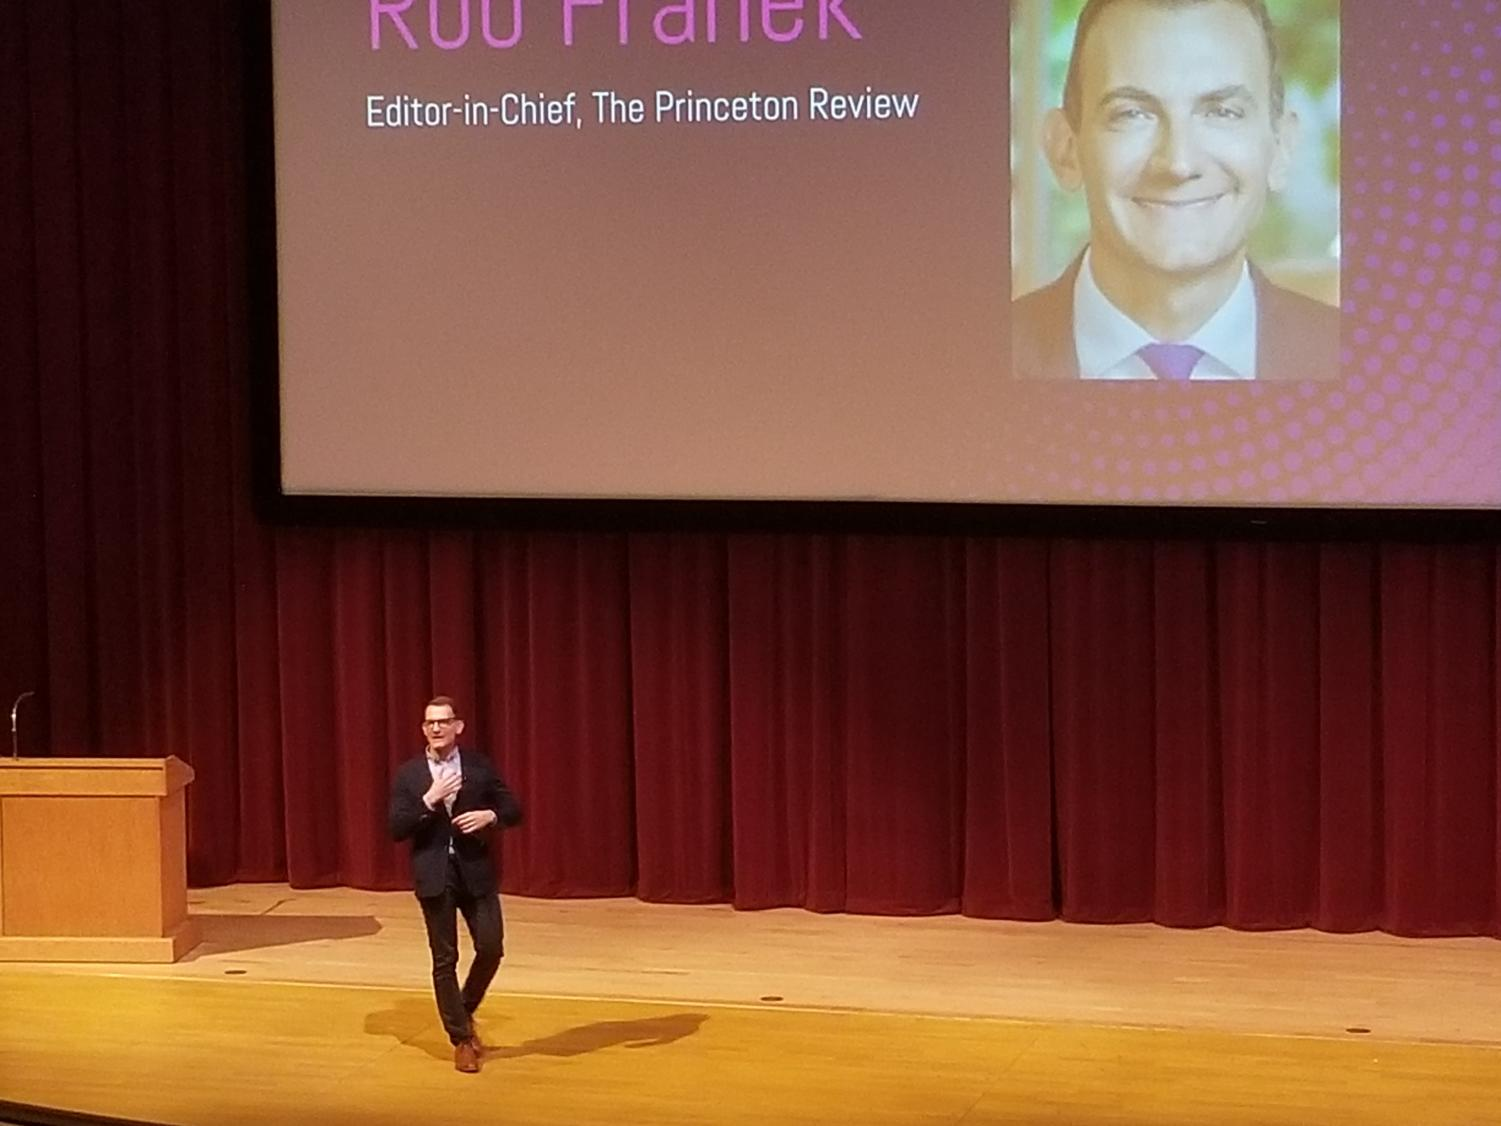 Robert Franek walks onto stage to begin his presentation on behalf of the Princeton Review.